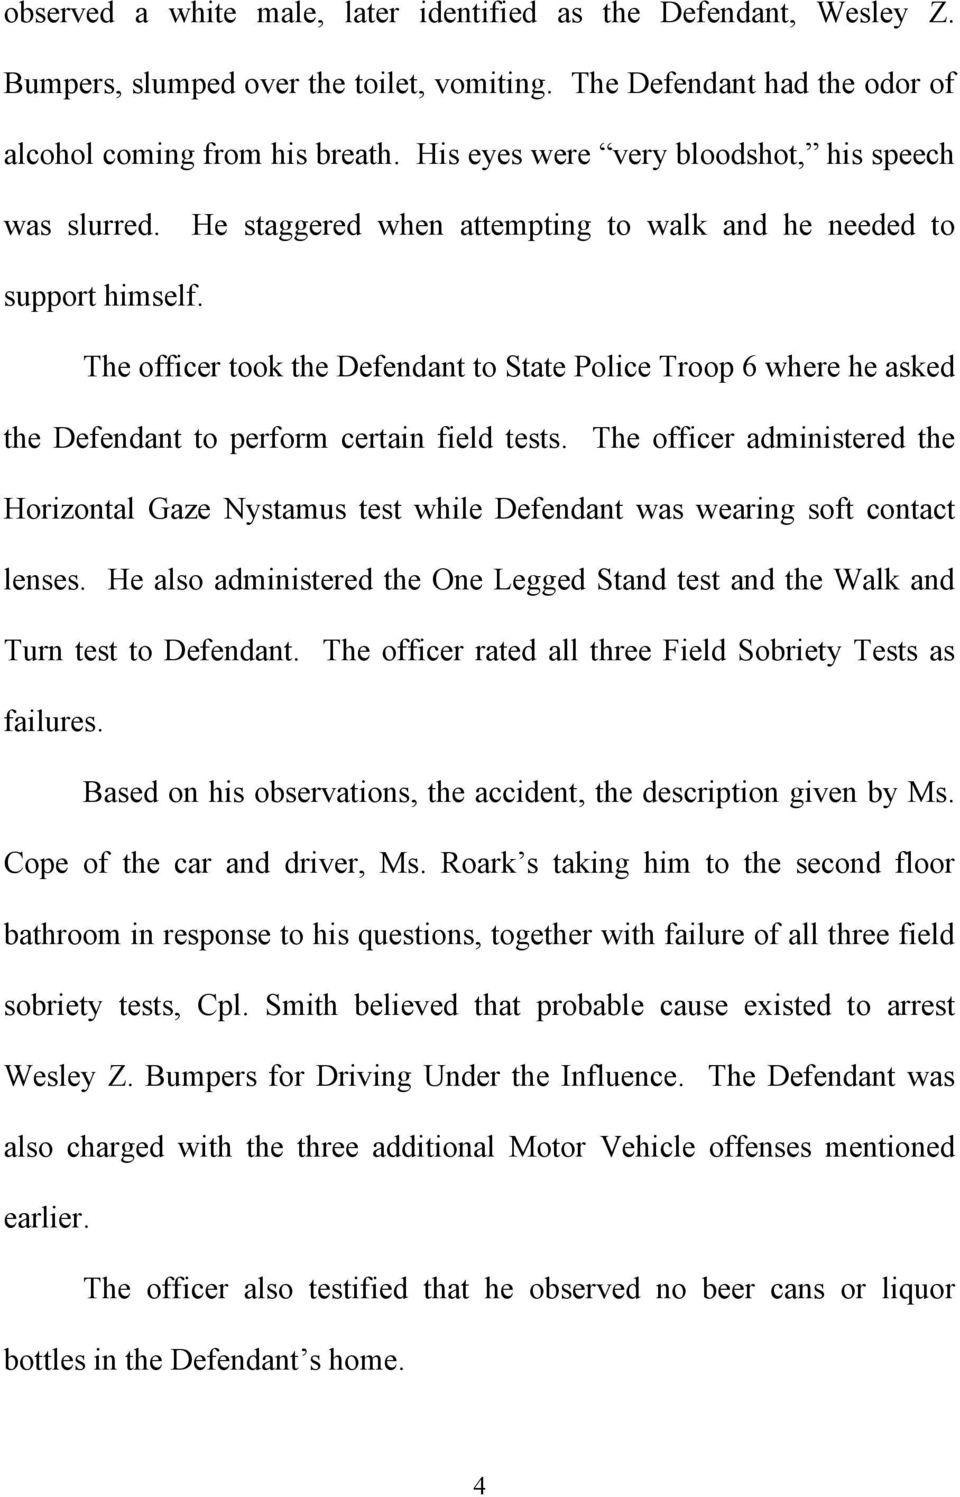 The officer took the Defendant to State Police Troop 6 where he asked the Defendant to perform certain field tests.